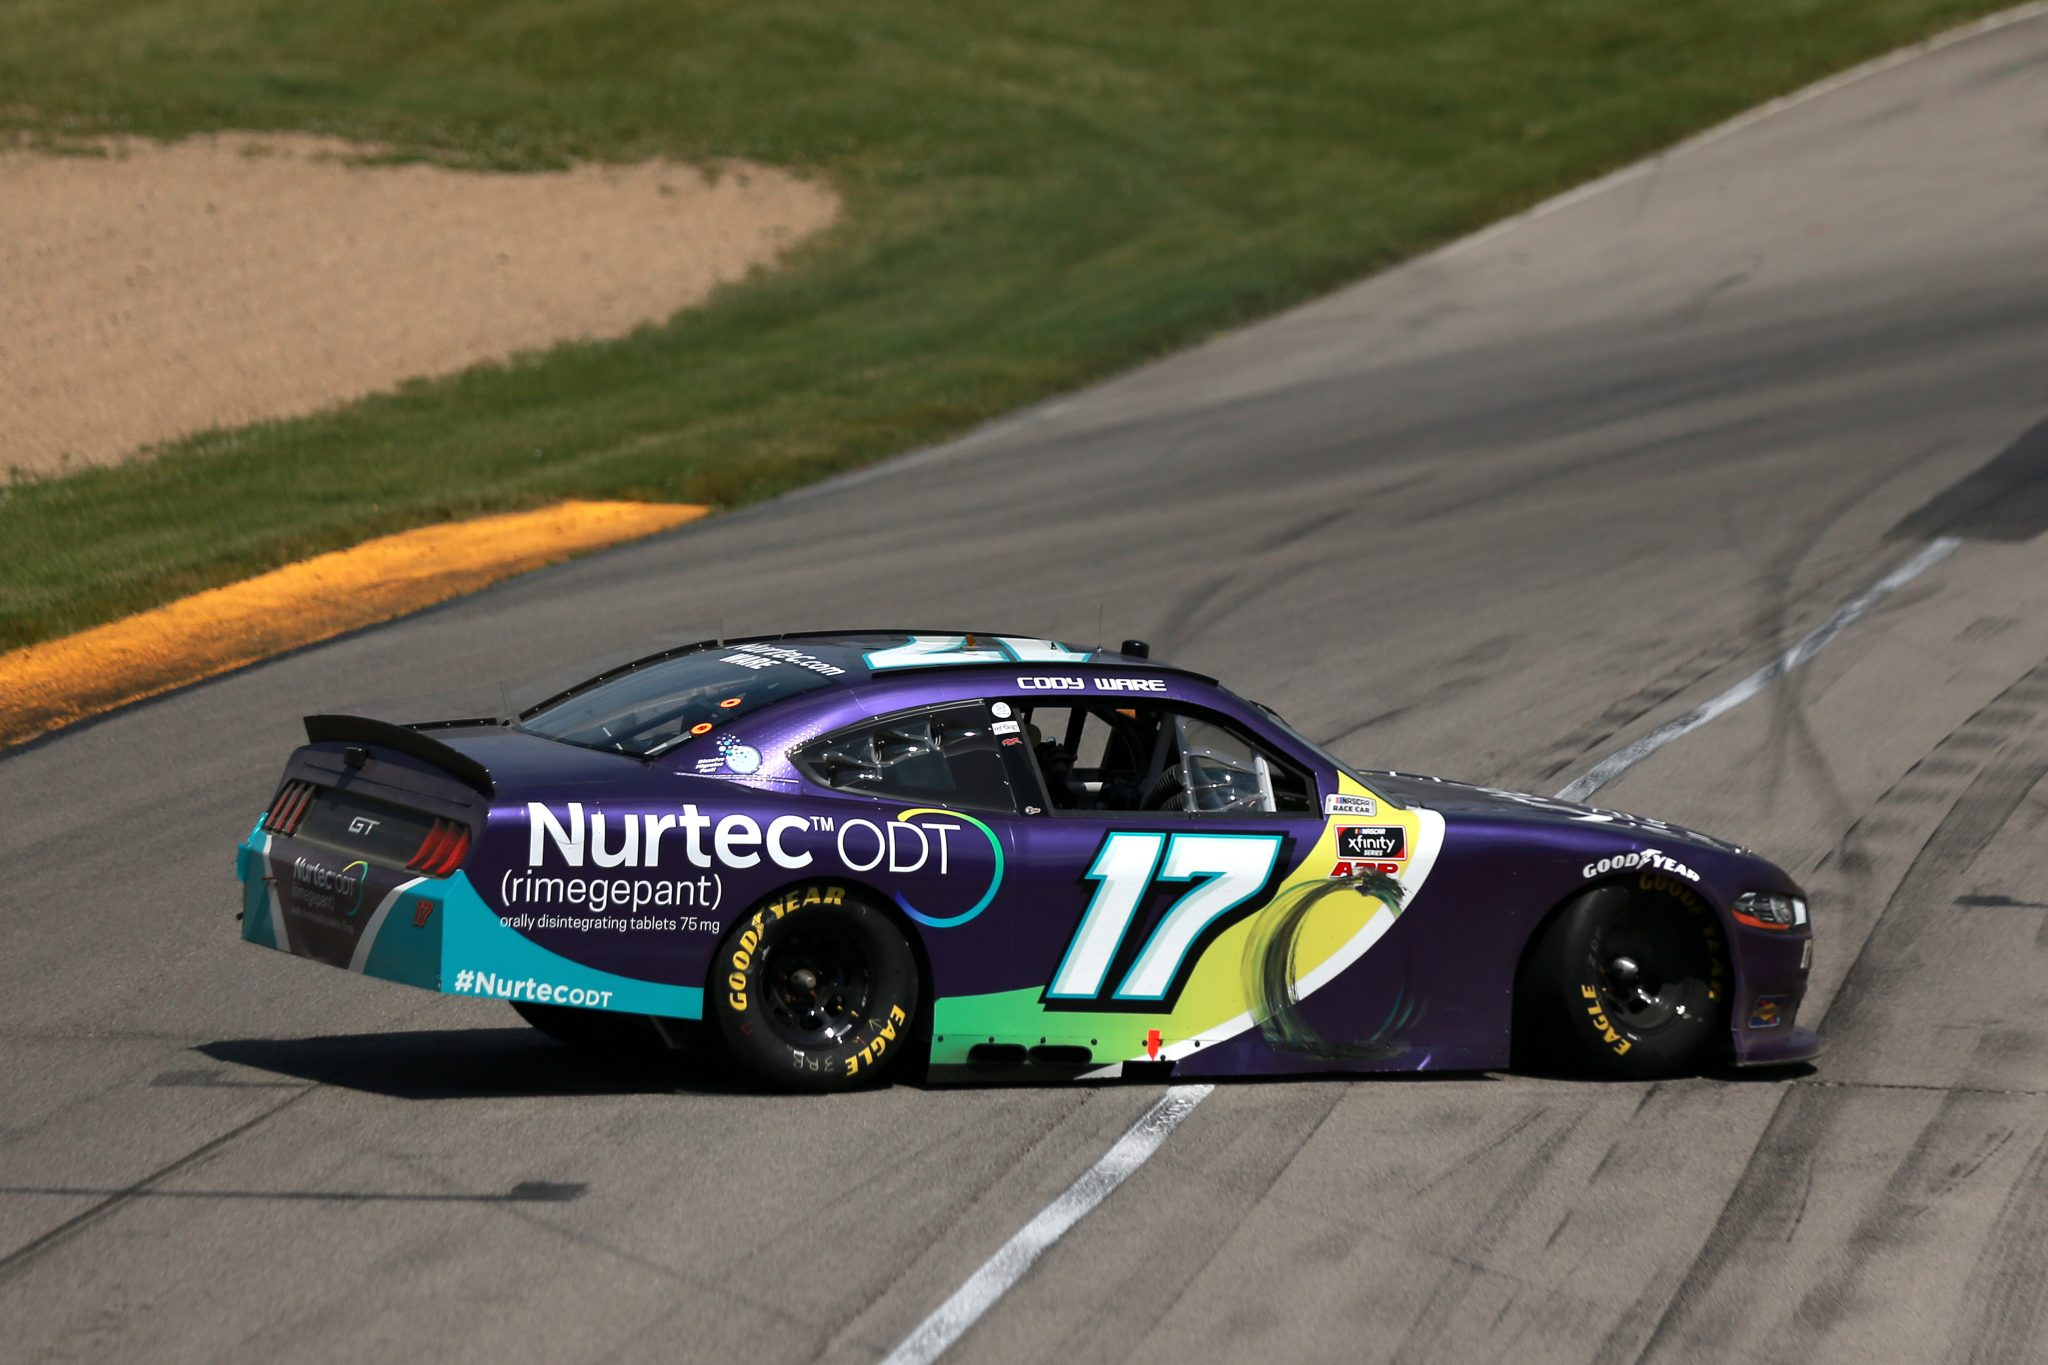 LEXINGTON, OHIO - JUNE 05: Cody Ware, driver of the #17 Nurtec ODT Ford, spins after an on-track incident during the NASCAR Xfinity Series B&L Transport 170 at Mid-Ohio Sports Car Course on June 05, 2021 in Lexington, Ohio. (Photo by Sean Gardner/Getty Images)   Getty Images